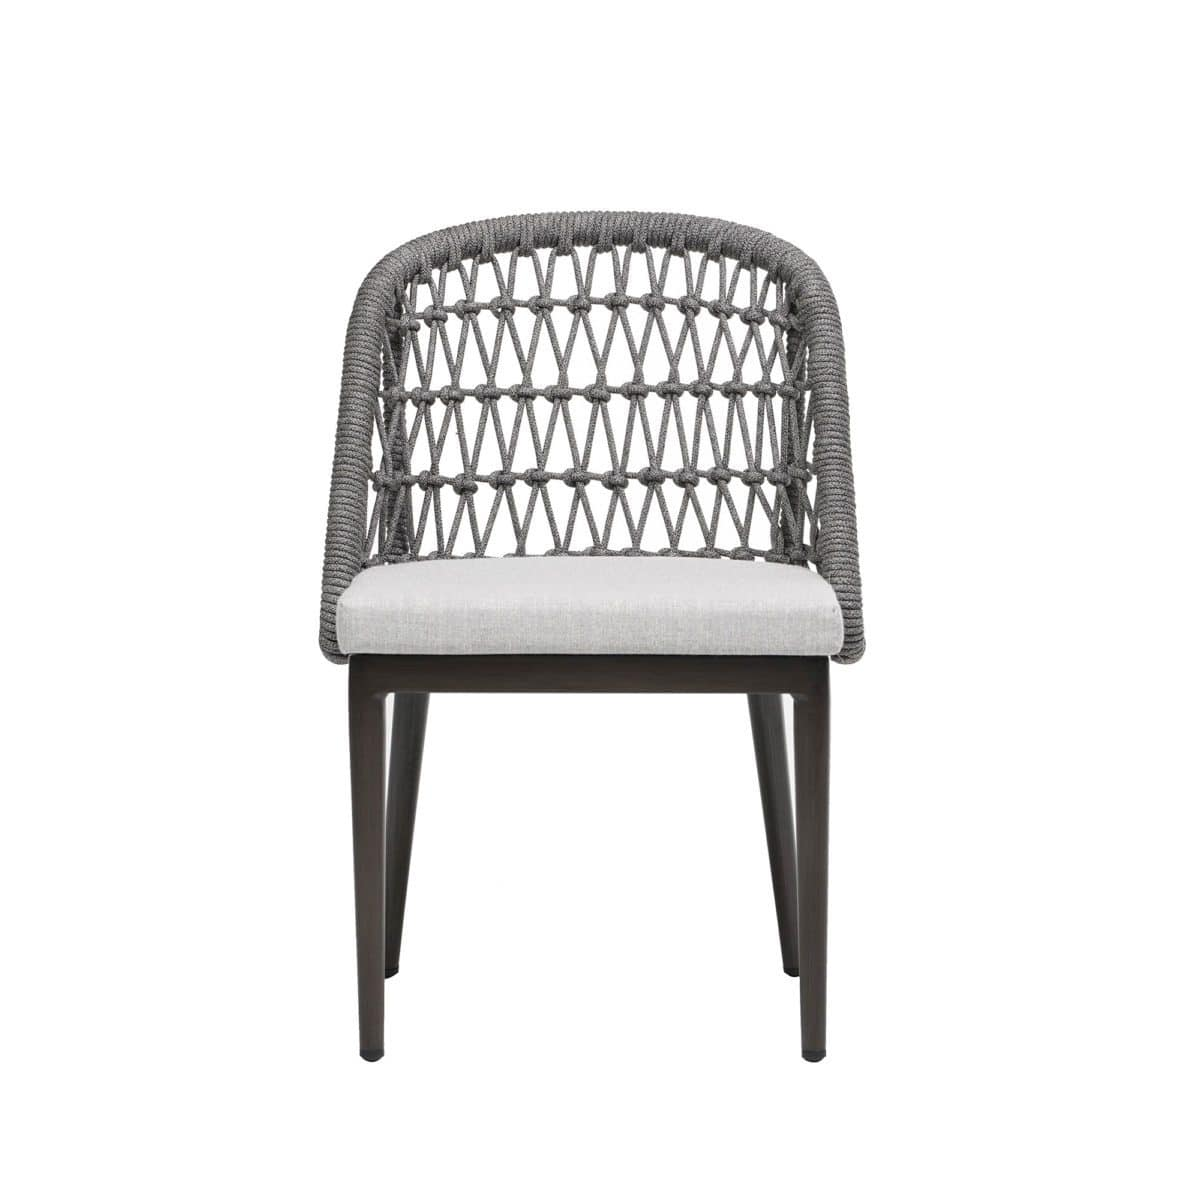 Ratana Side Chair Poinciana Dining Side Chair